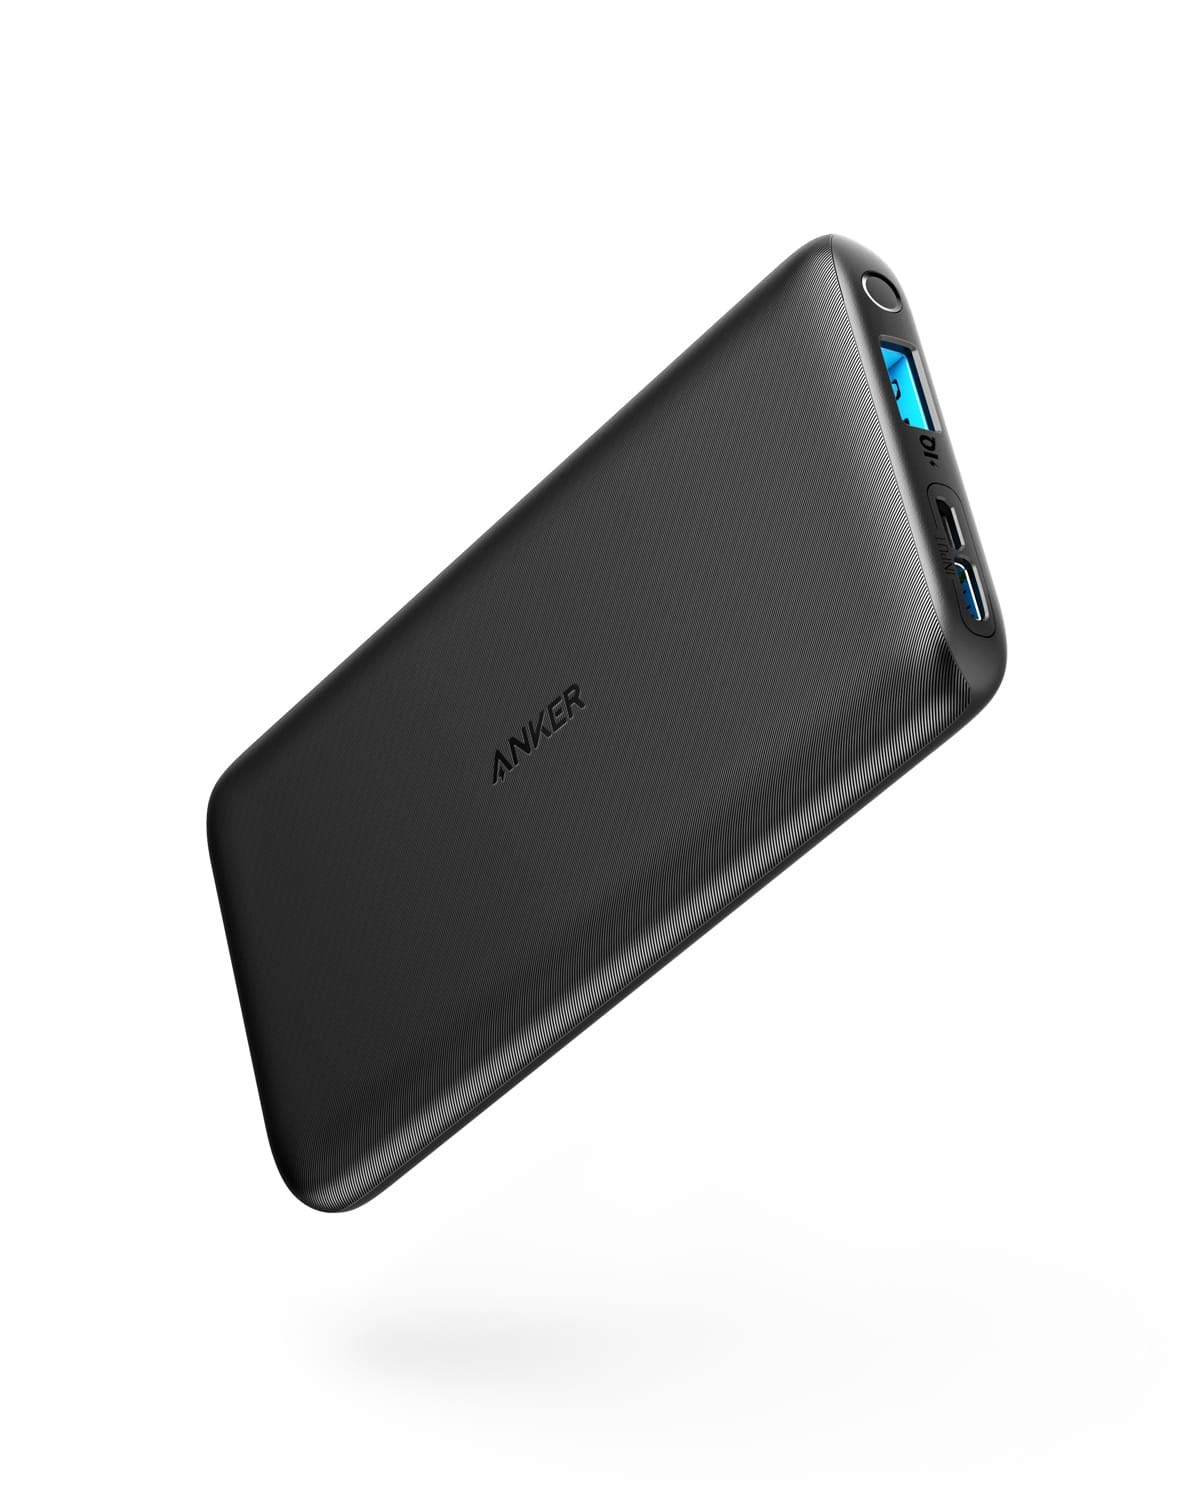 Anker PowerCore Lite 10000mAh, USB-C Input (Only), High Capacity Portable Charger, Slim and Light External Battery for iPhone, Samsung Galaxy, and More by Anker